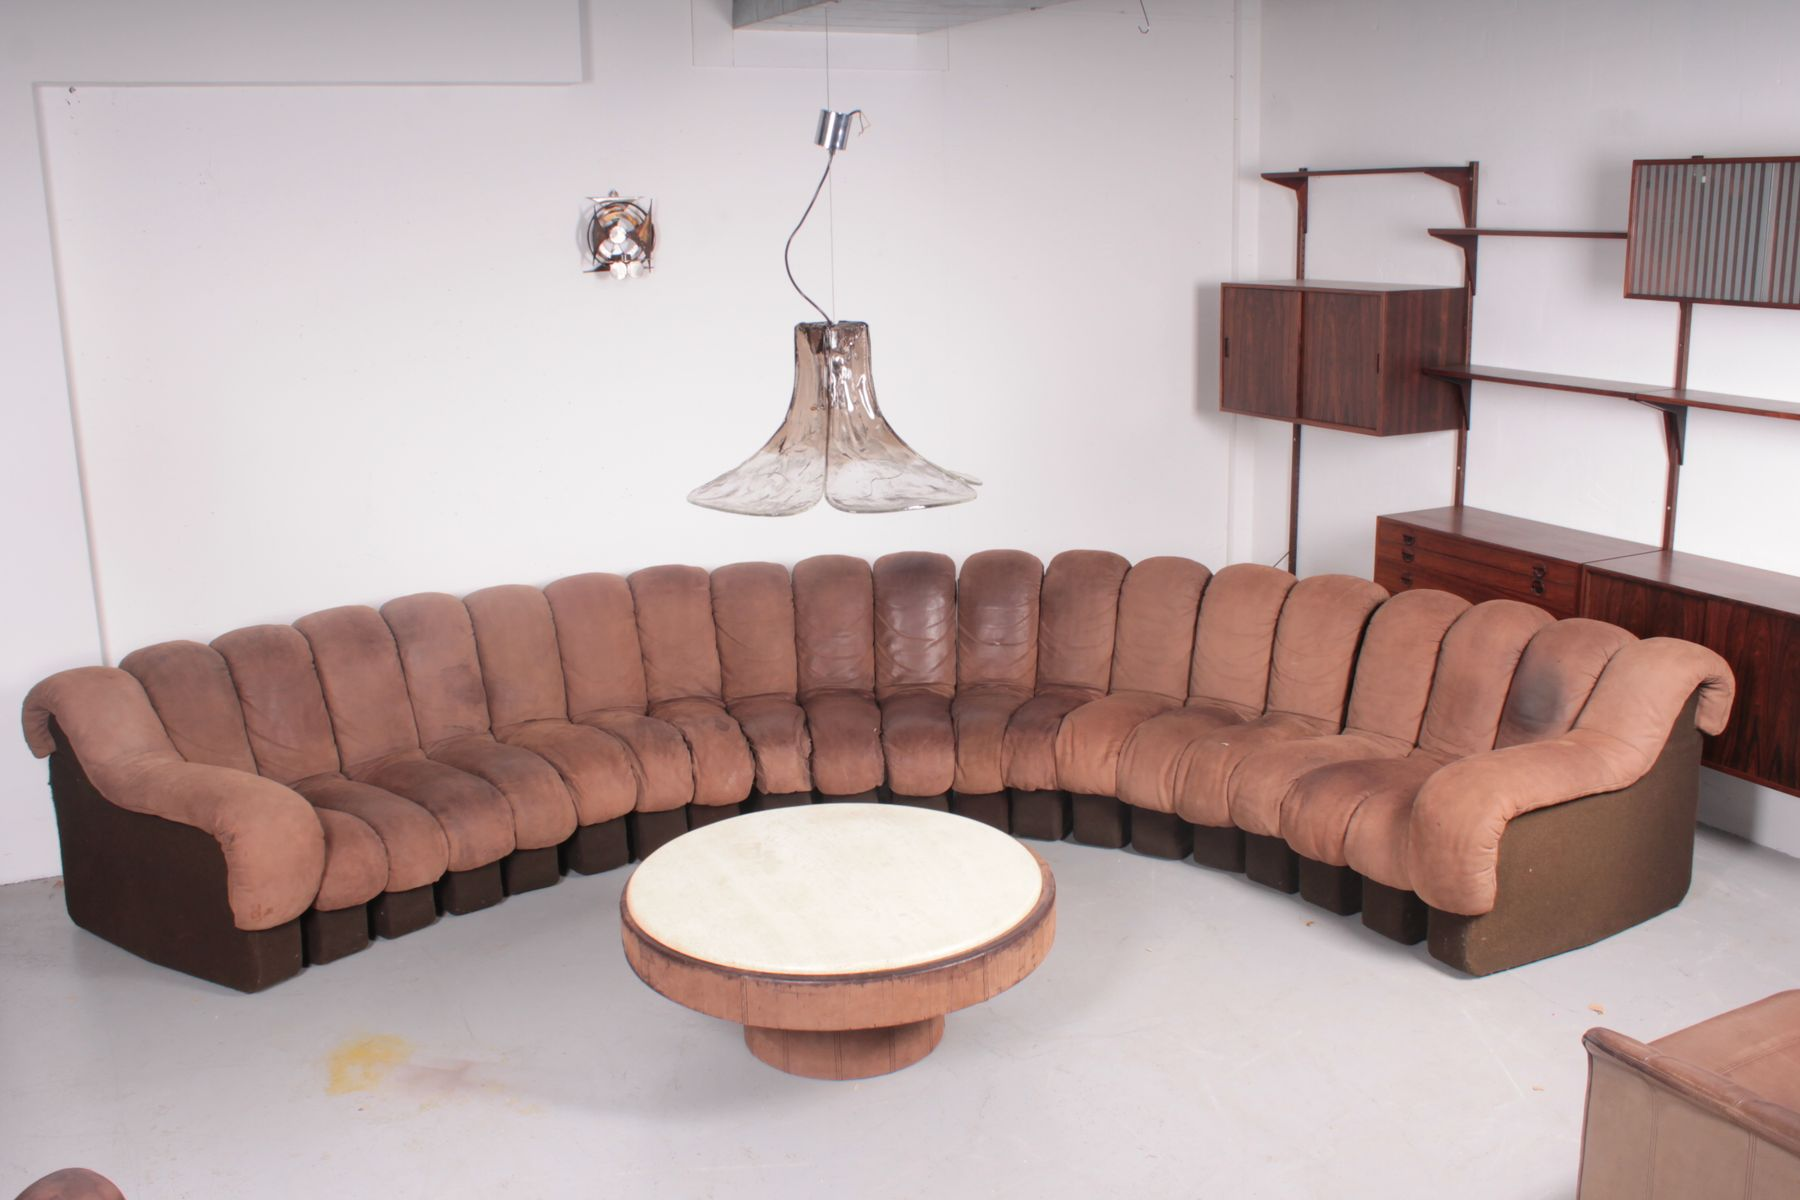 DS600 Sofa & Coffee Table from De Sede 1980s for sale at Pamono